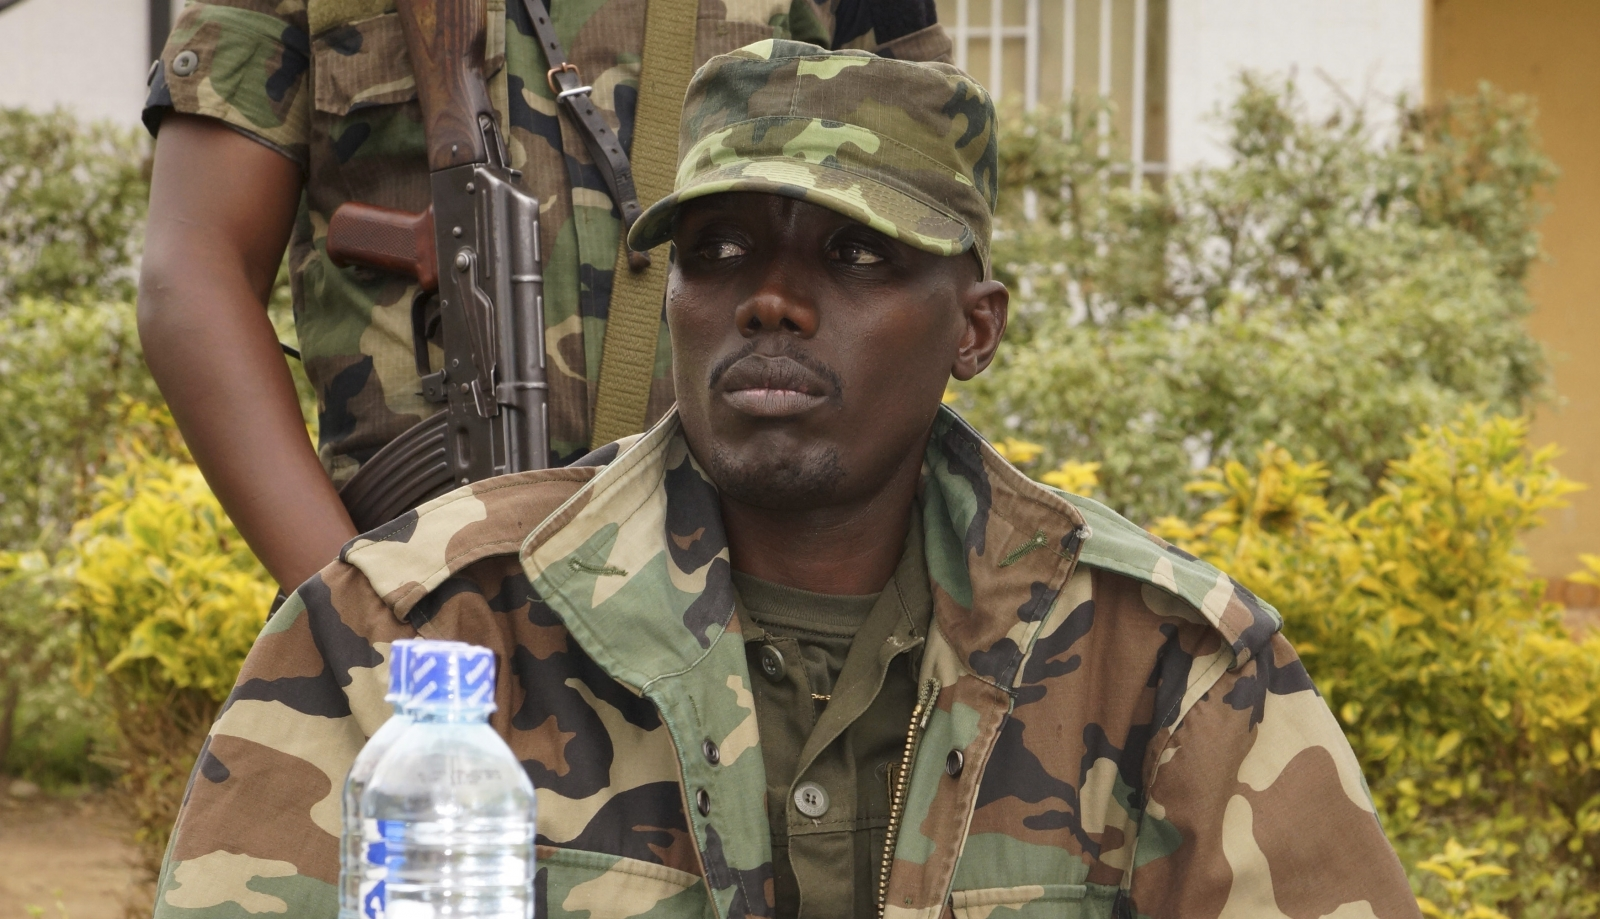 22 dead in clashes between army and M23 rebels in DRC since January says official